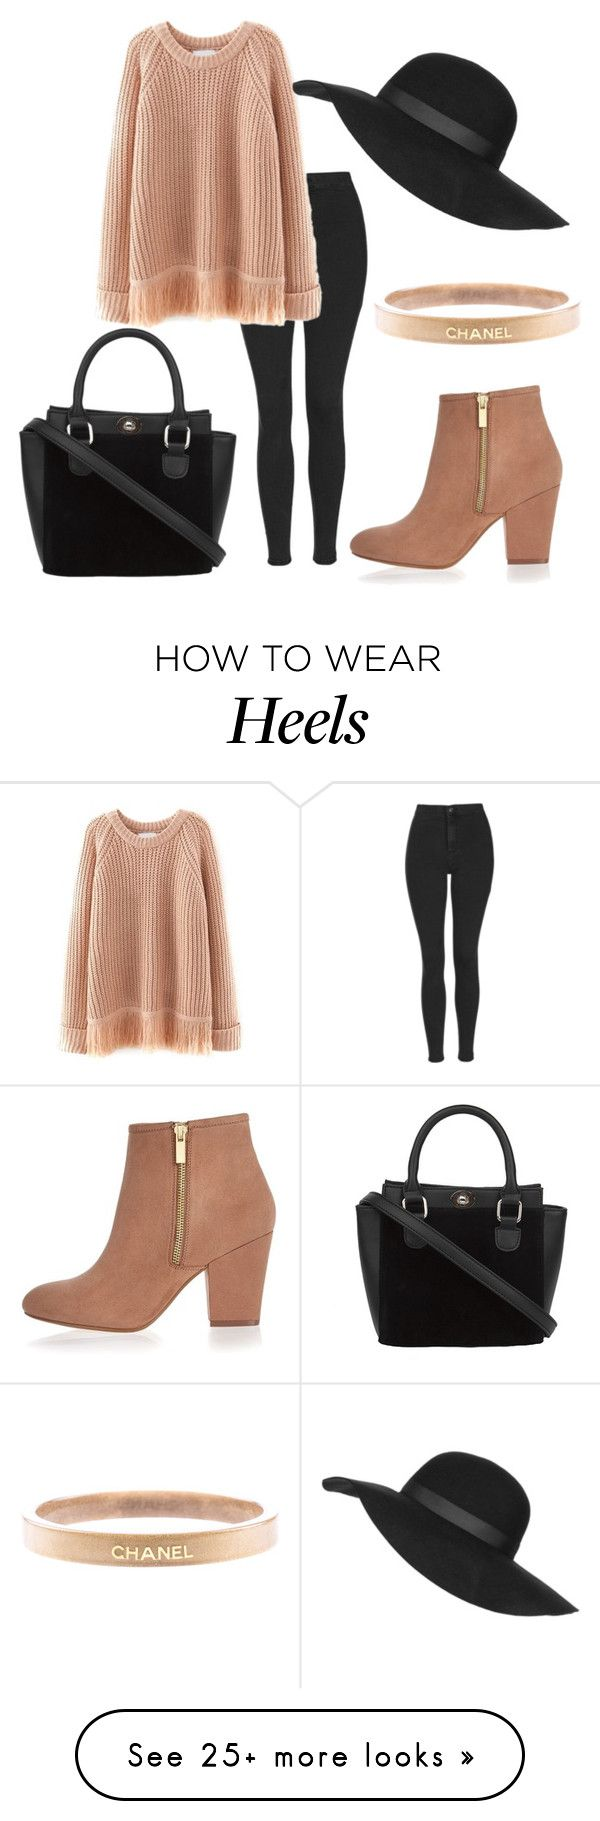 """:)"" by heart235 on Polyvore featuring Topshop, Chanel, women's clothing, women, female, woman, misses and juniors"